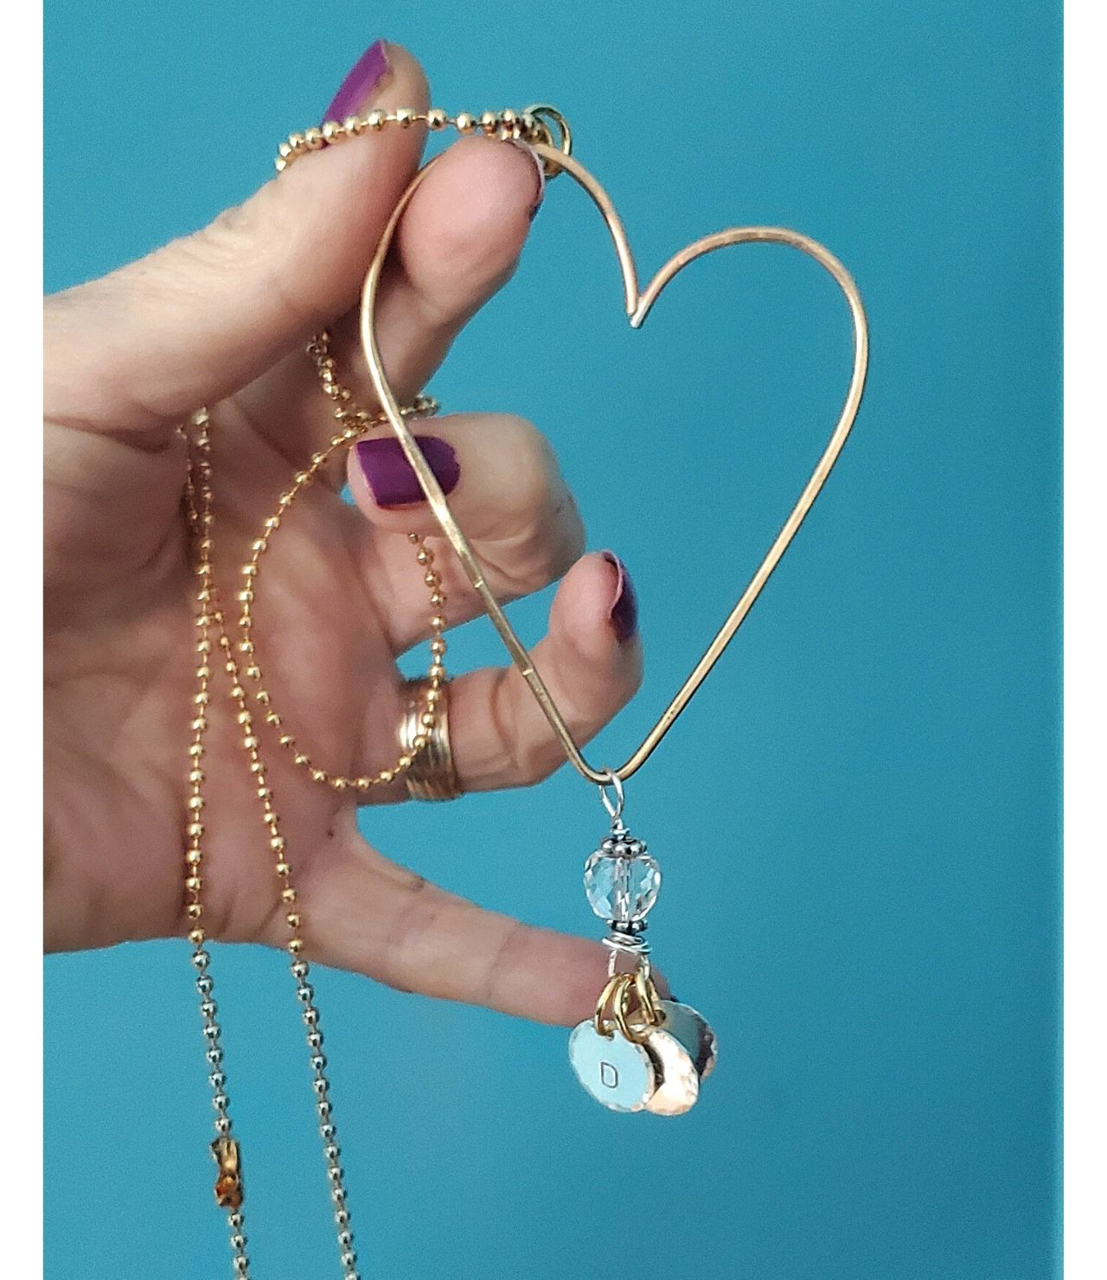 hand holding gold heart charm necklace on teal background